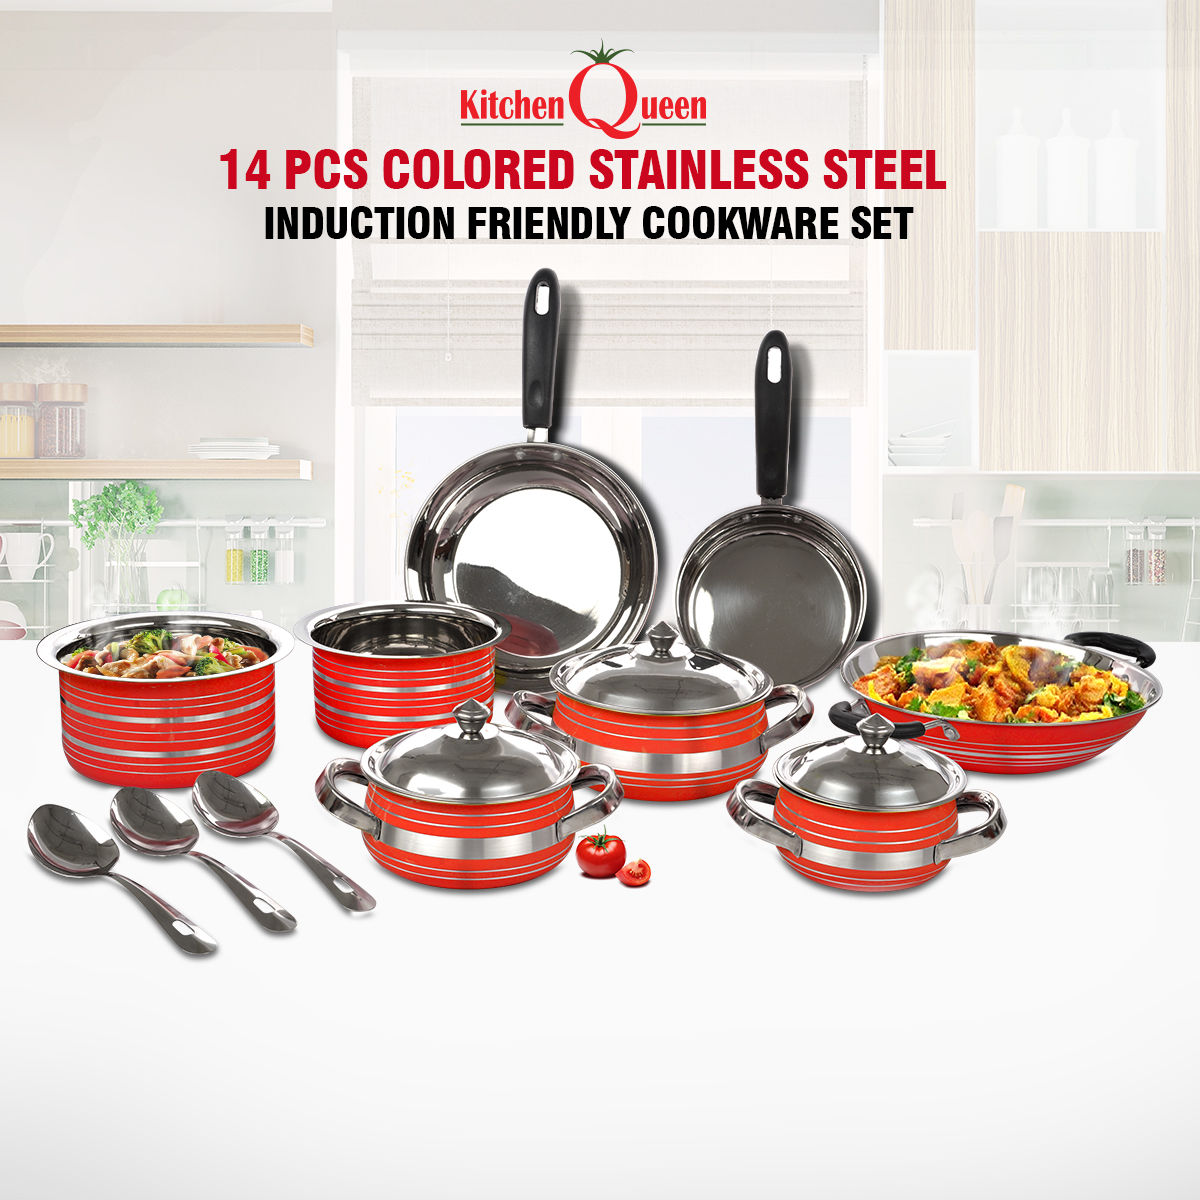 Buy 14 Pcs Colored Stainless Steel Induction Friendly Cookware Set